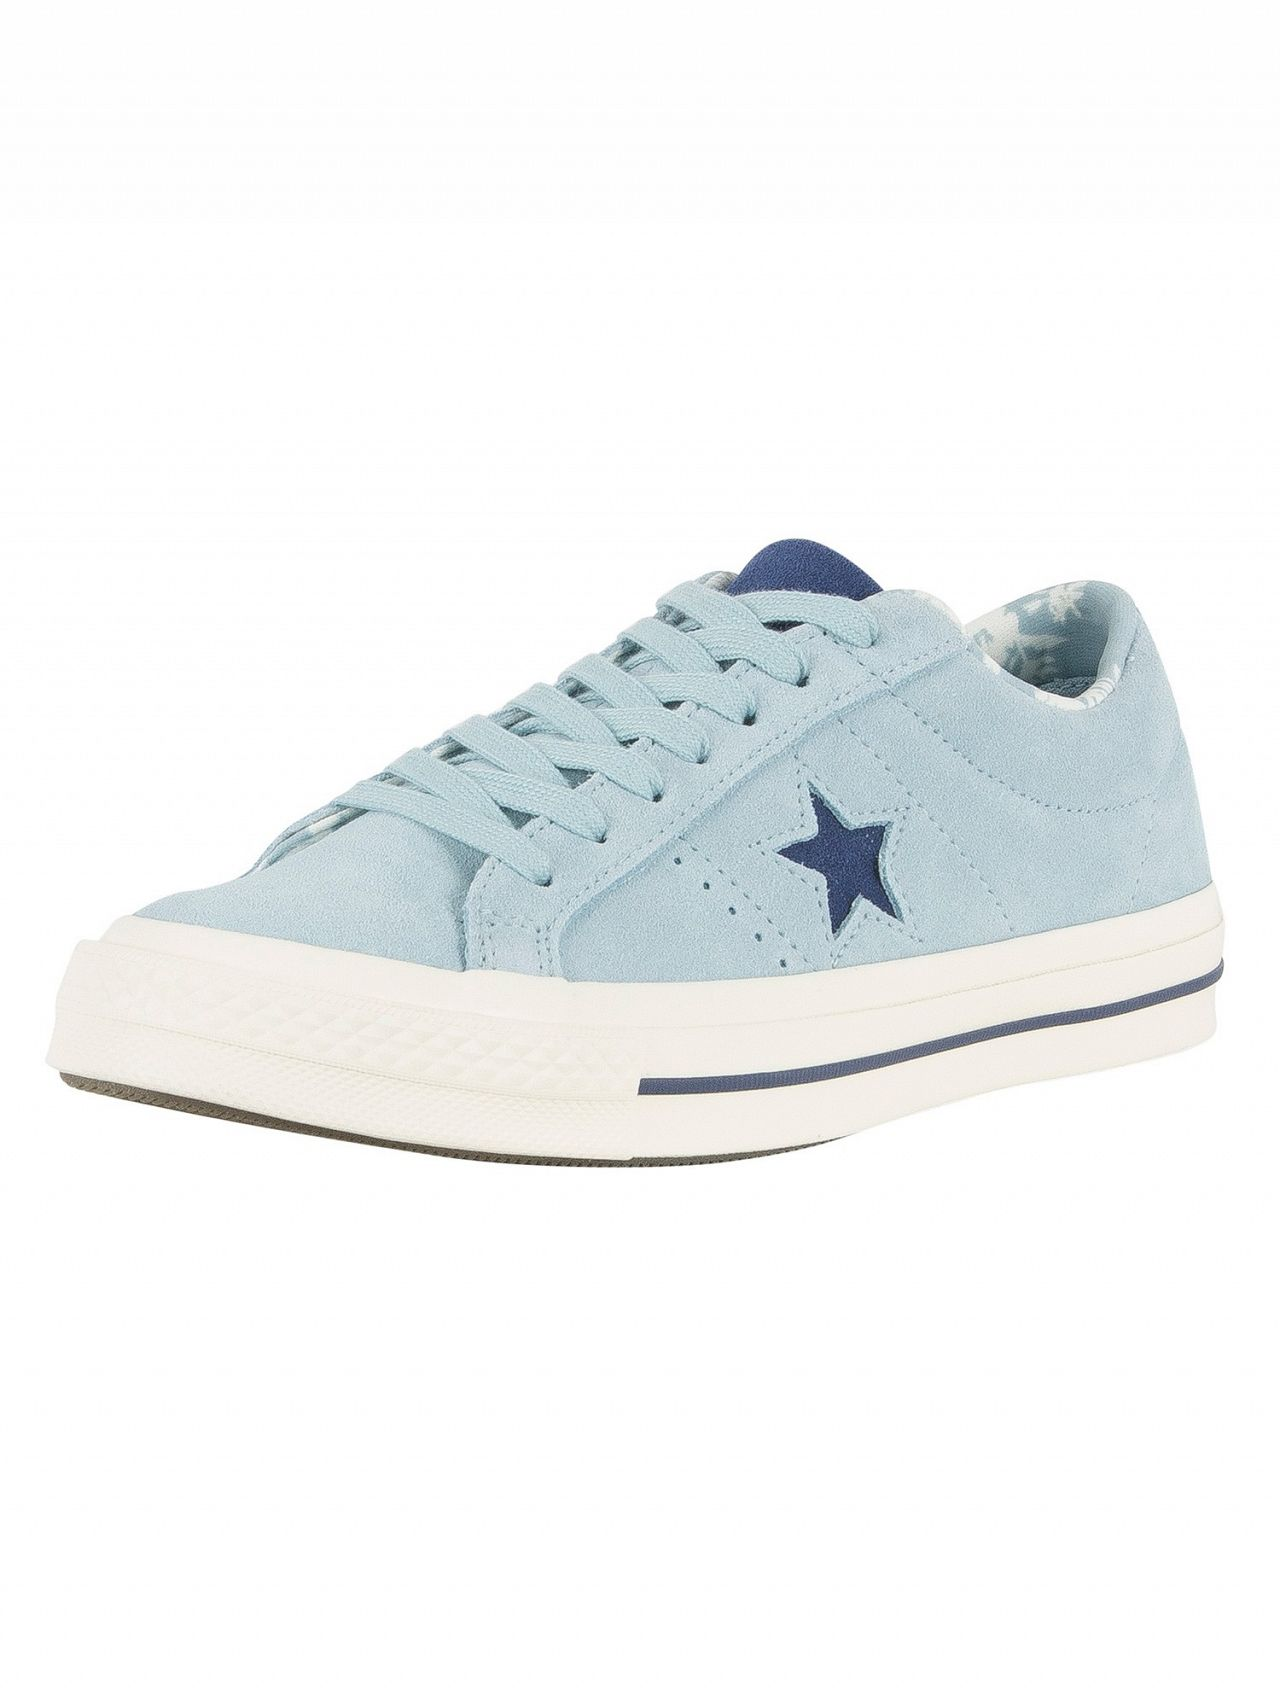 28950378d32bb4 Converse Ocean Bliss Navy Egret One Star OX Trainers